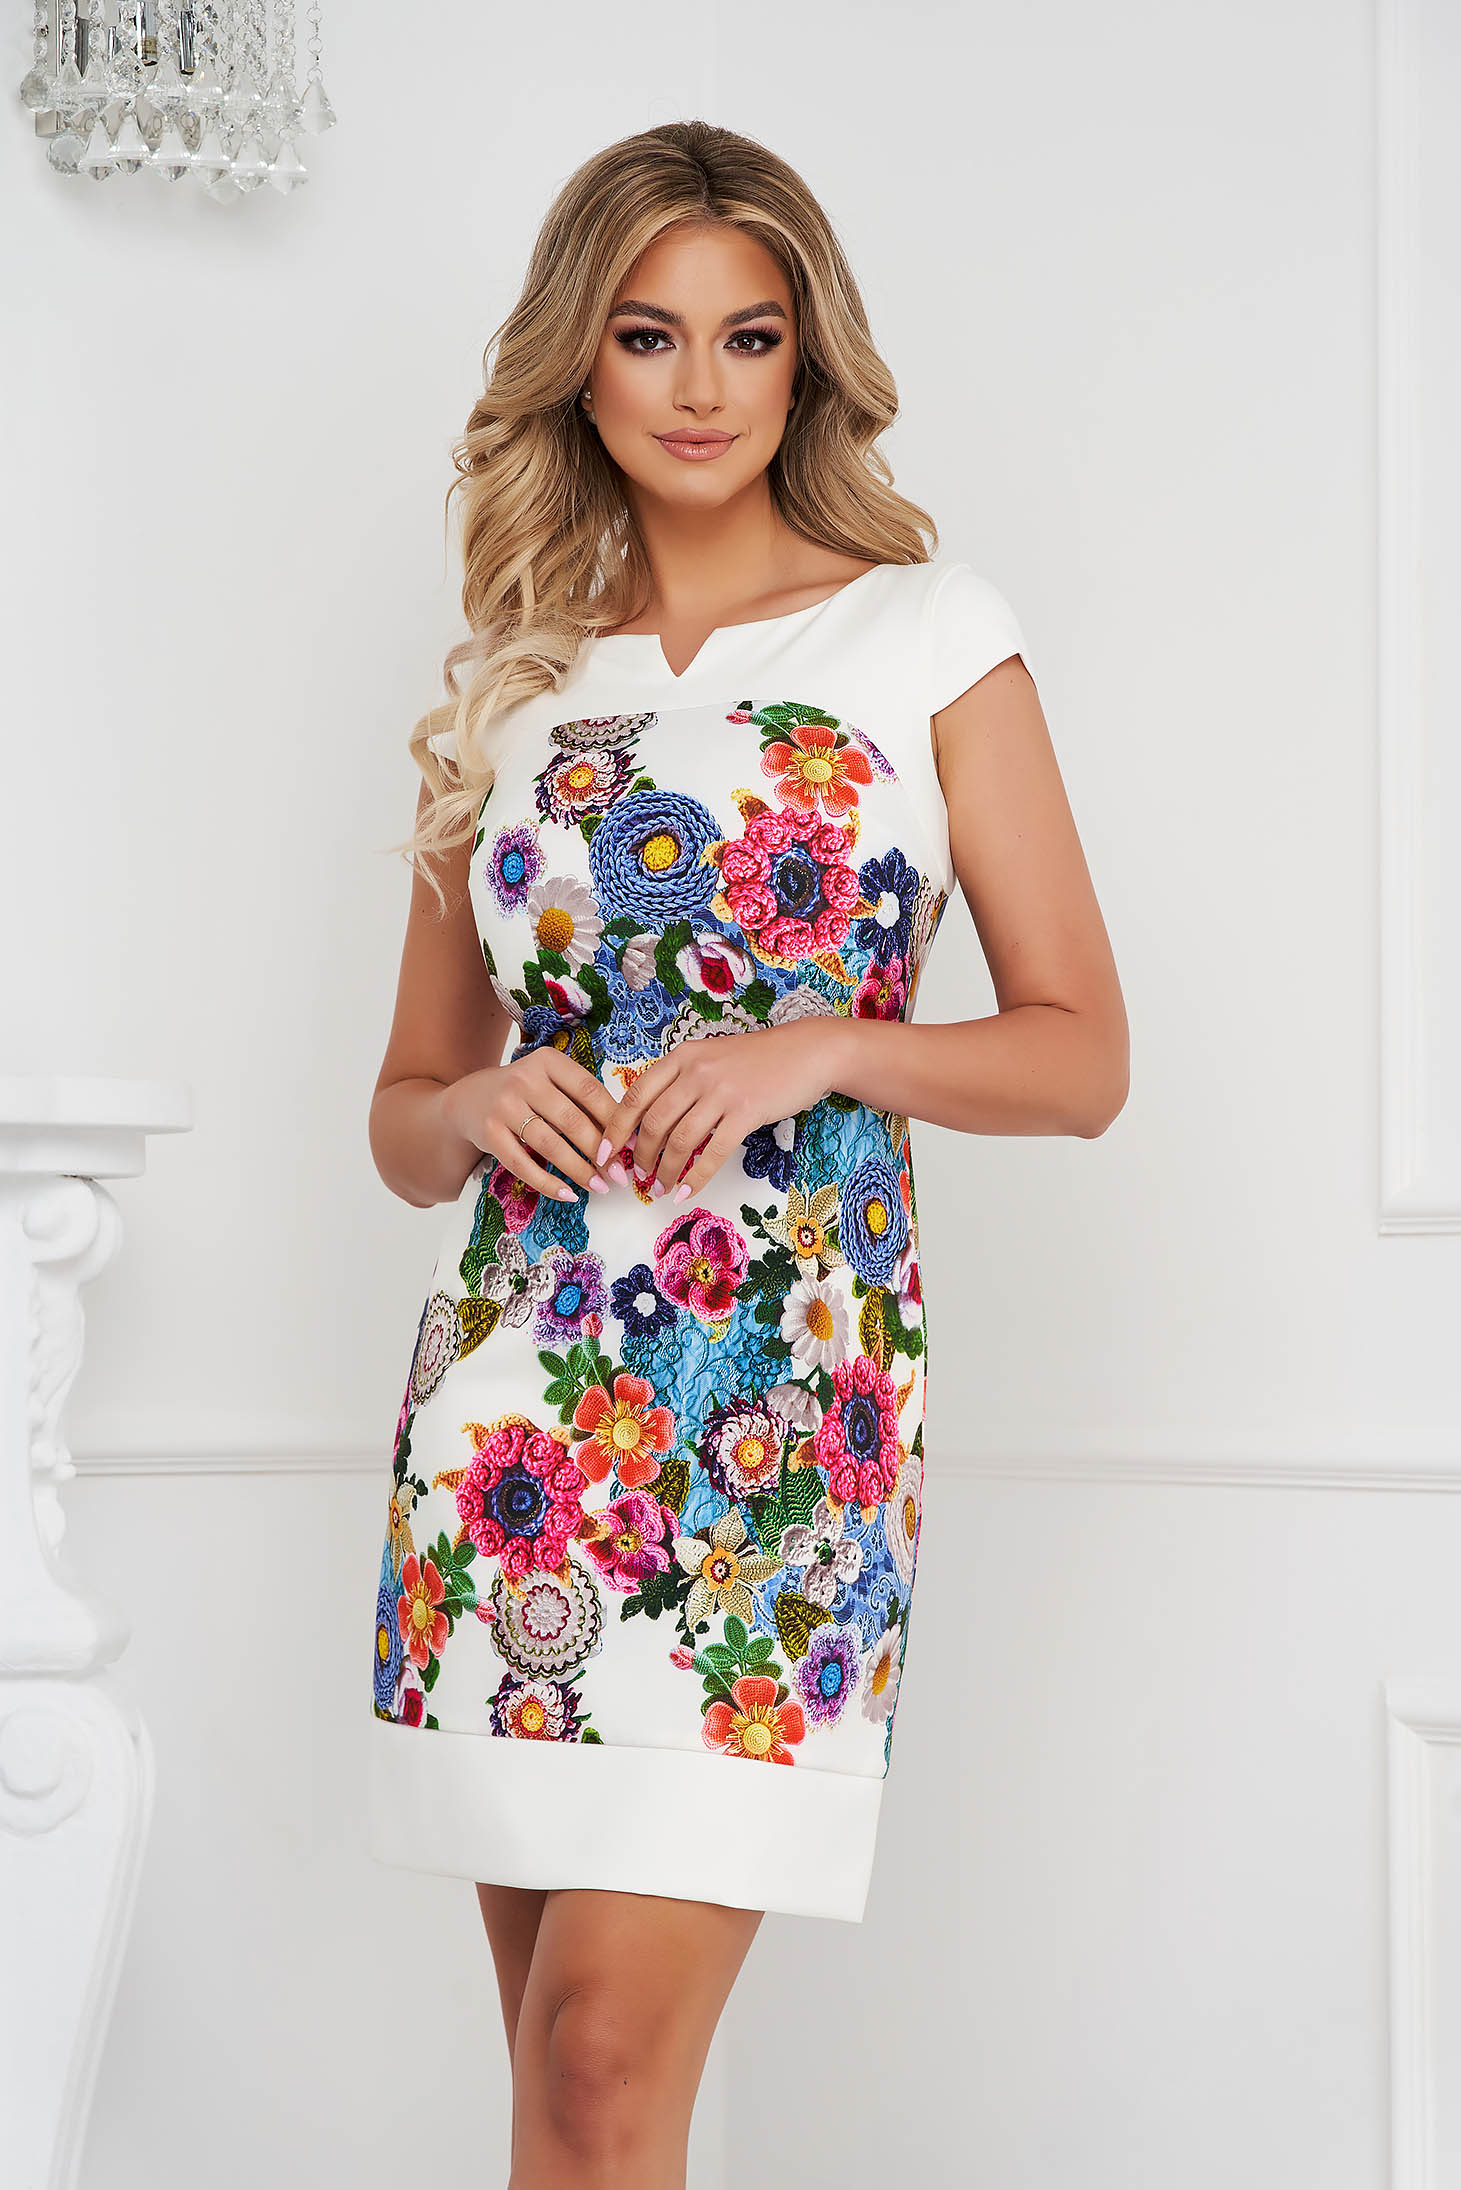 Dress short cut a-line short sleeves with floral print thin fabric